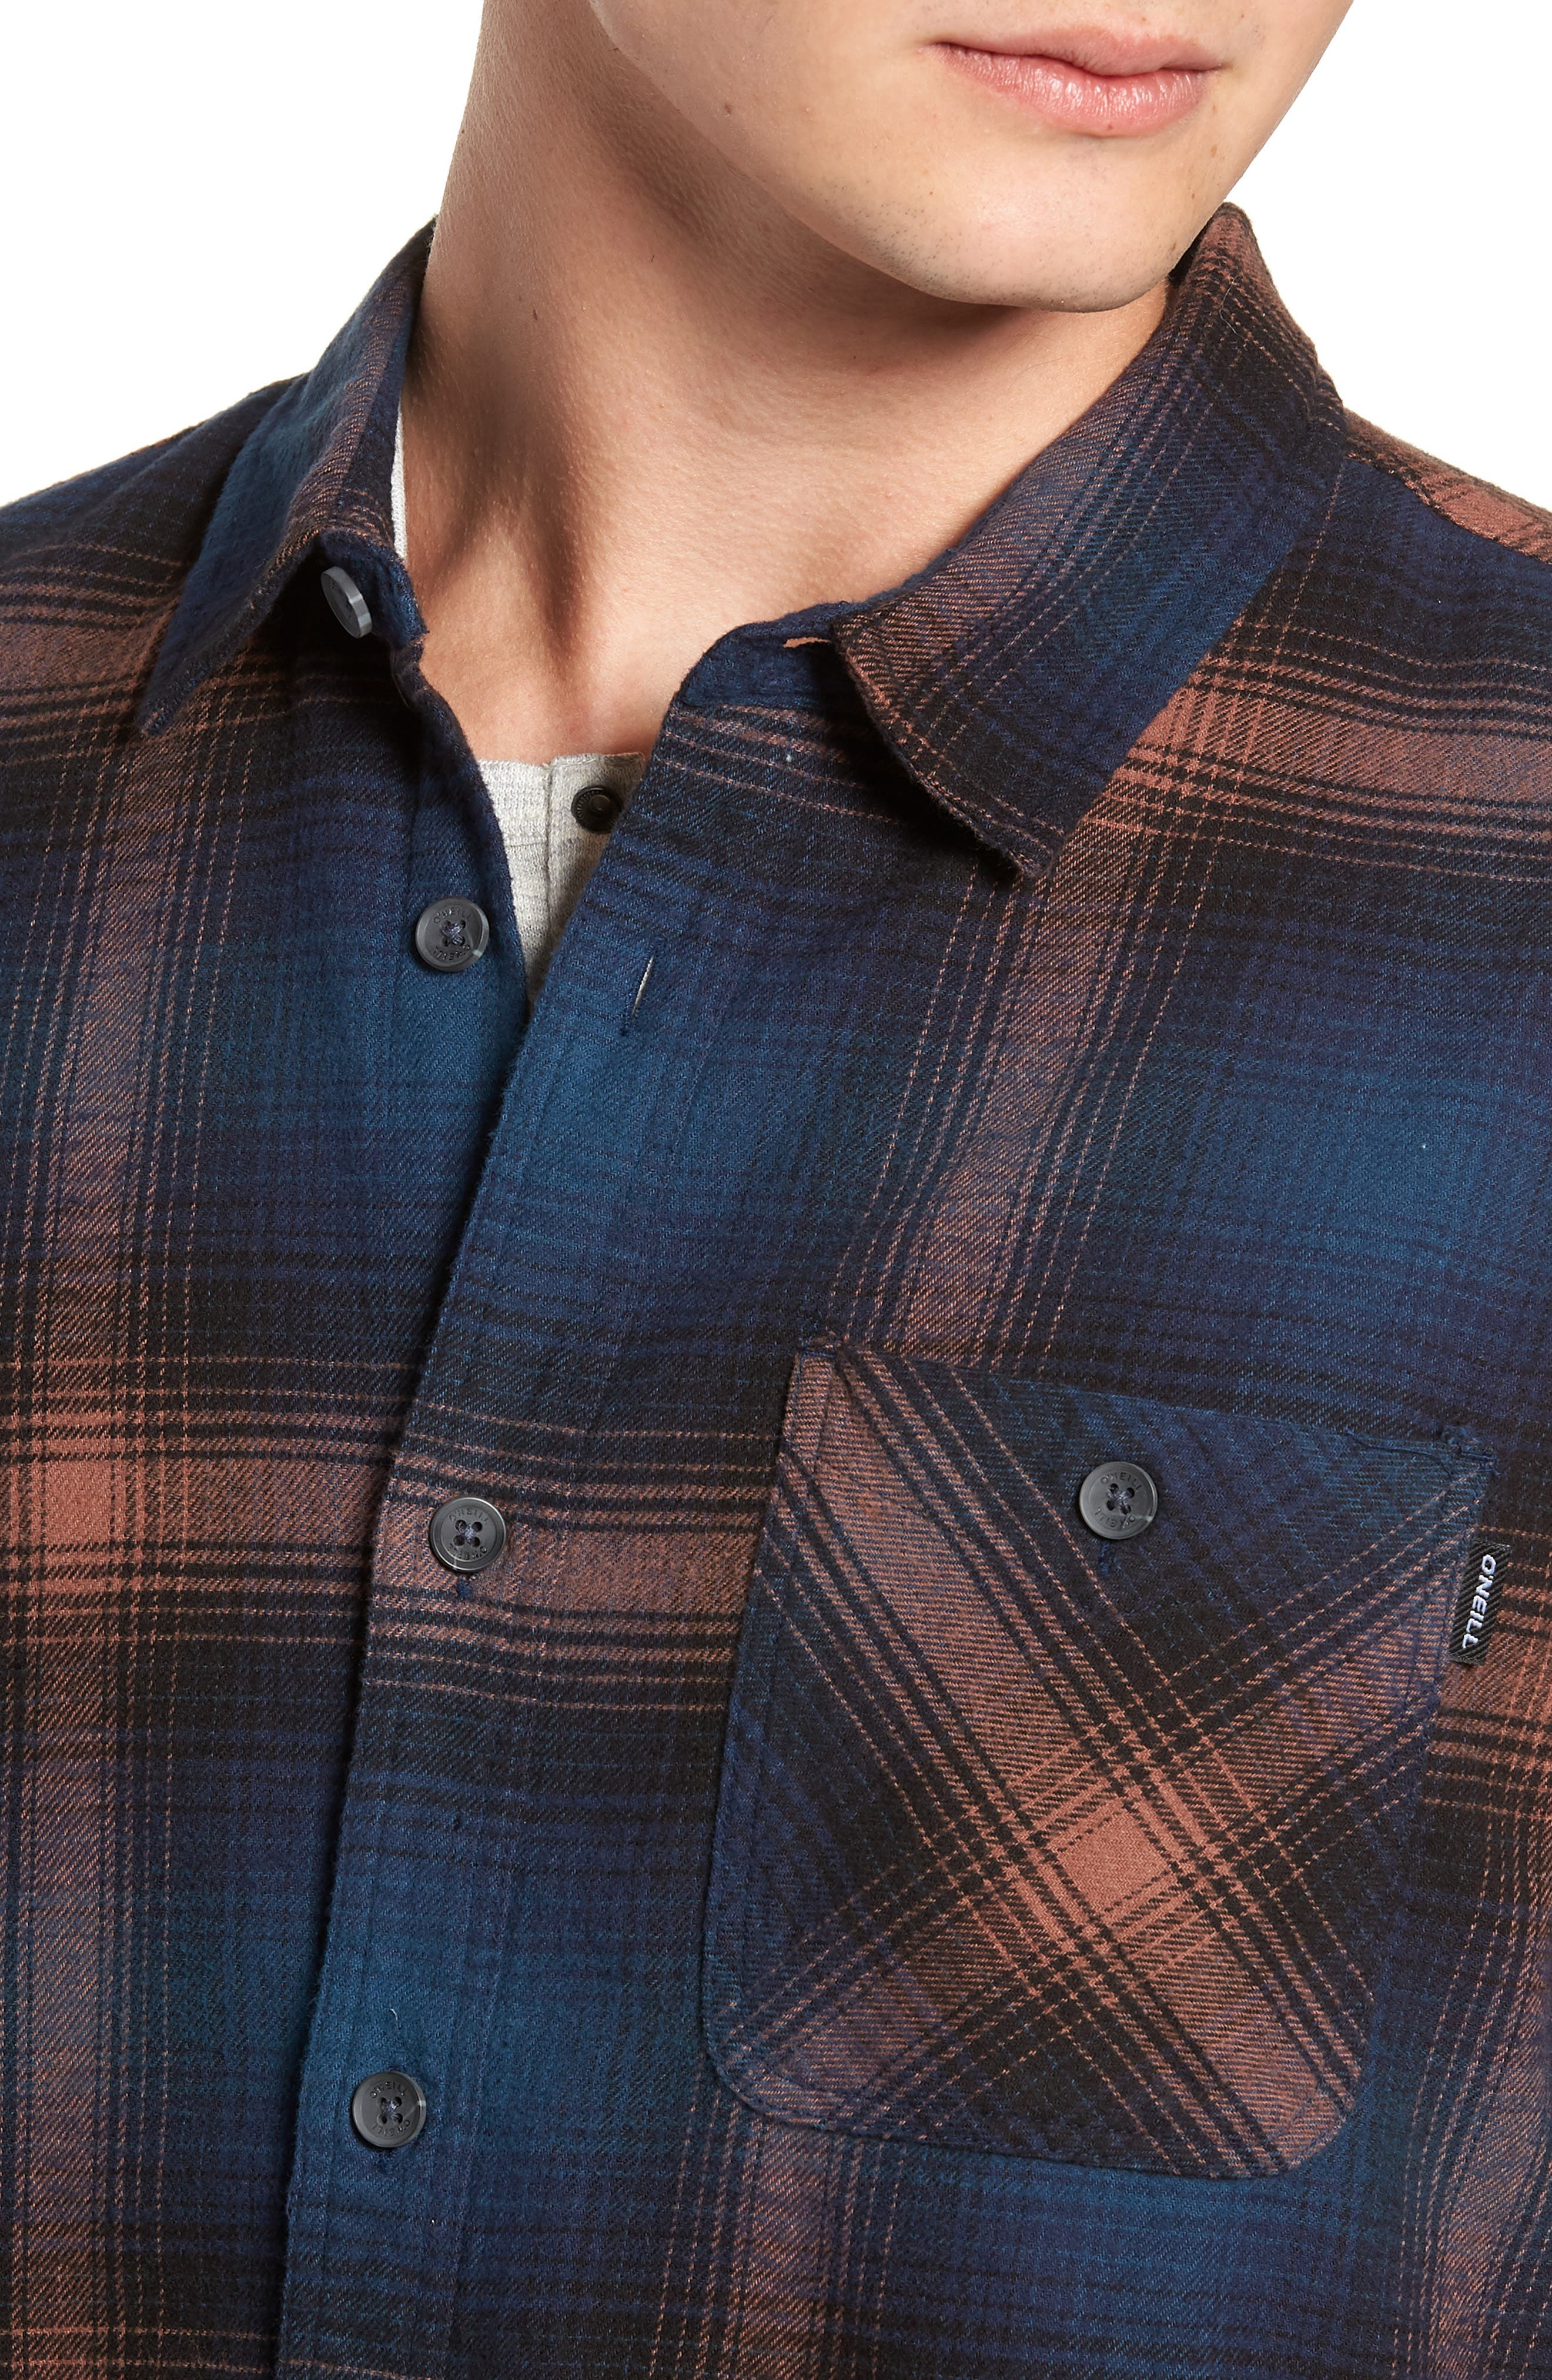 Dillishaw Flannel Shirt,                             Alternate thumbnail 2, color,                             NAVY